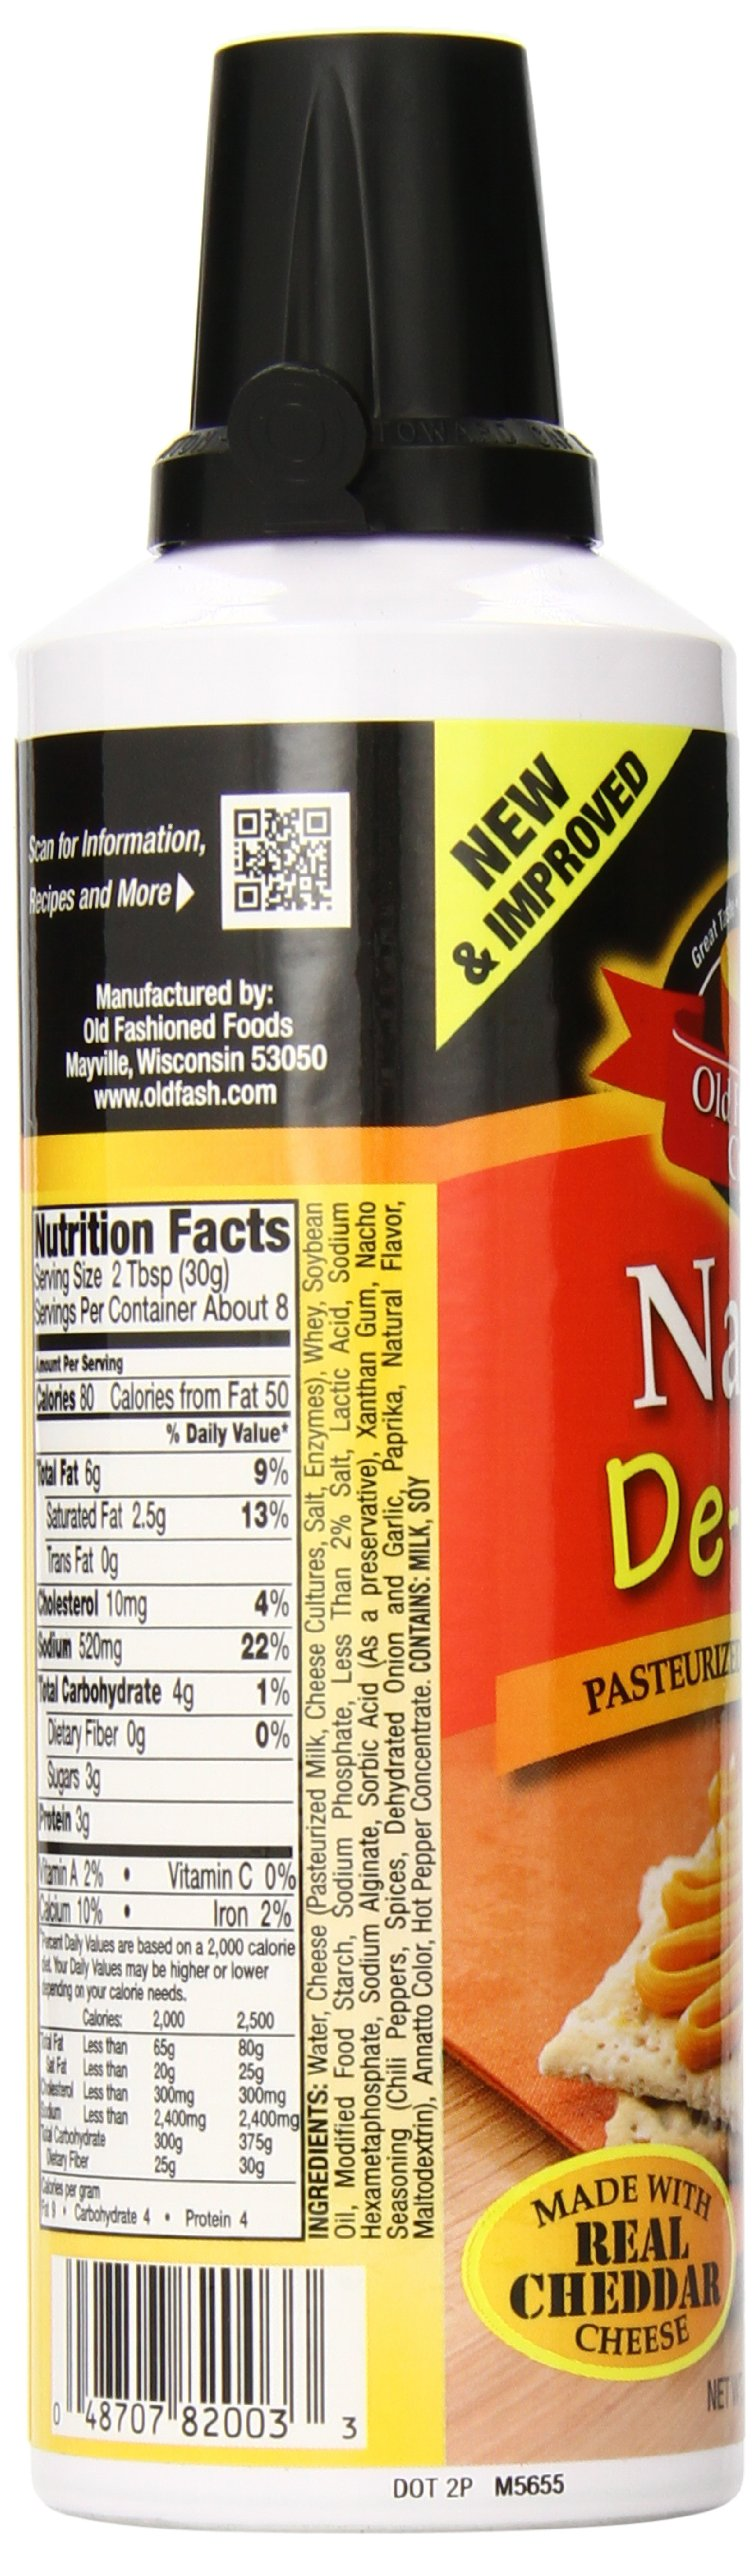 Old Fashioned Cheese Nacho De Lish Cheese Spread, 8 Ounce by Old Fashioned Cheese (Image #6)